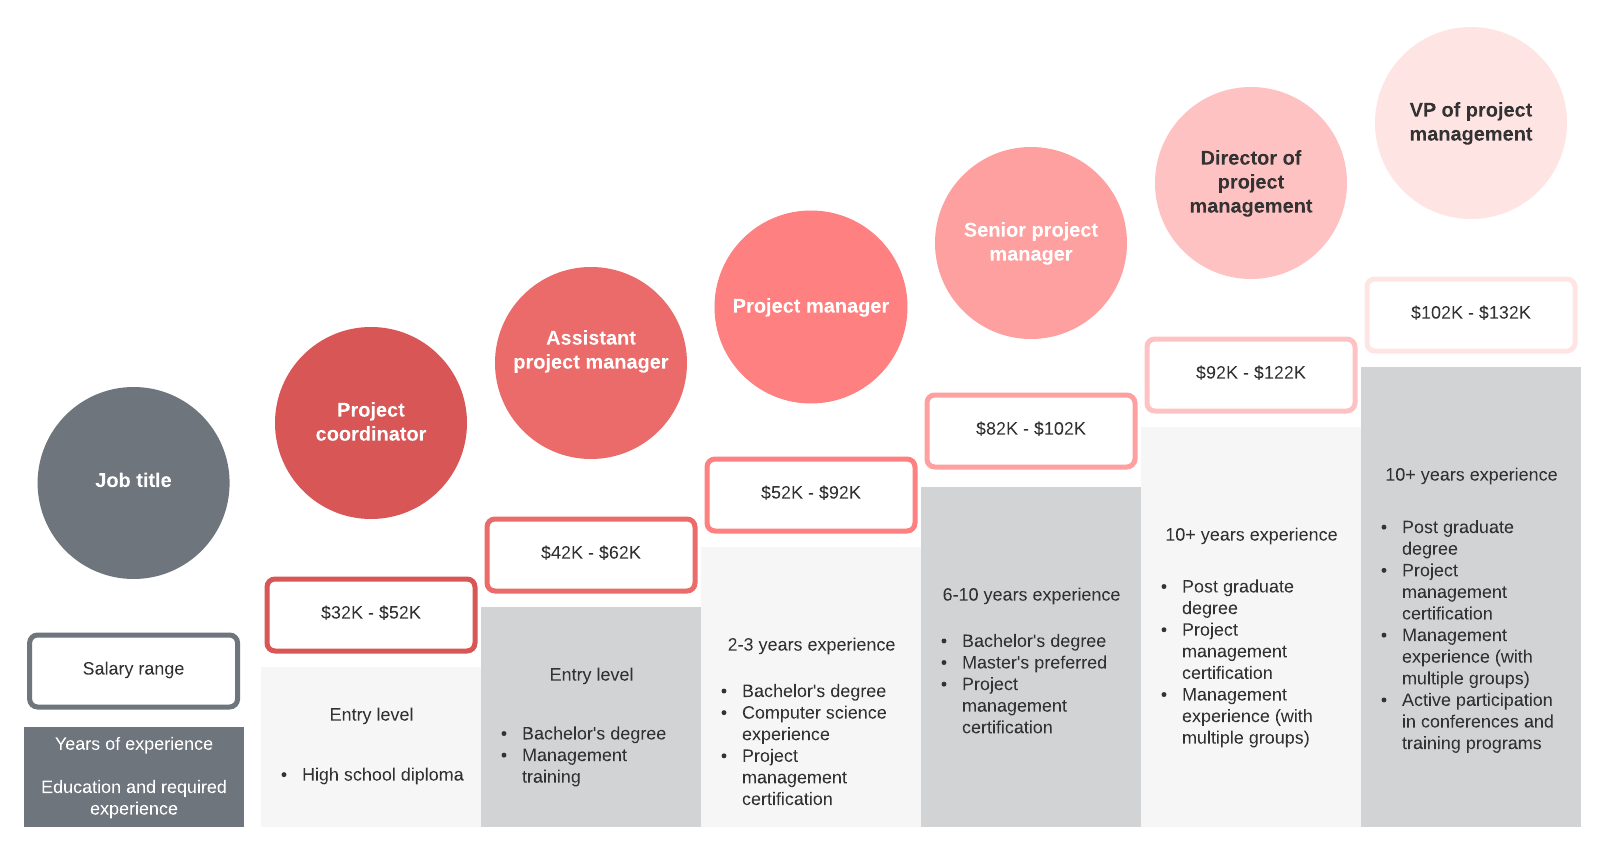 career path example for project management